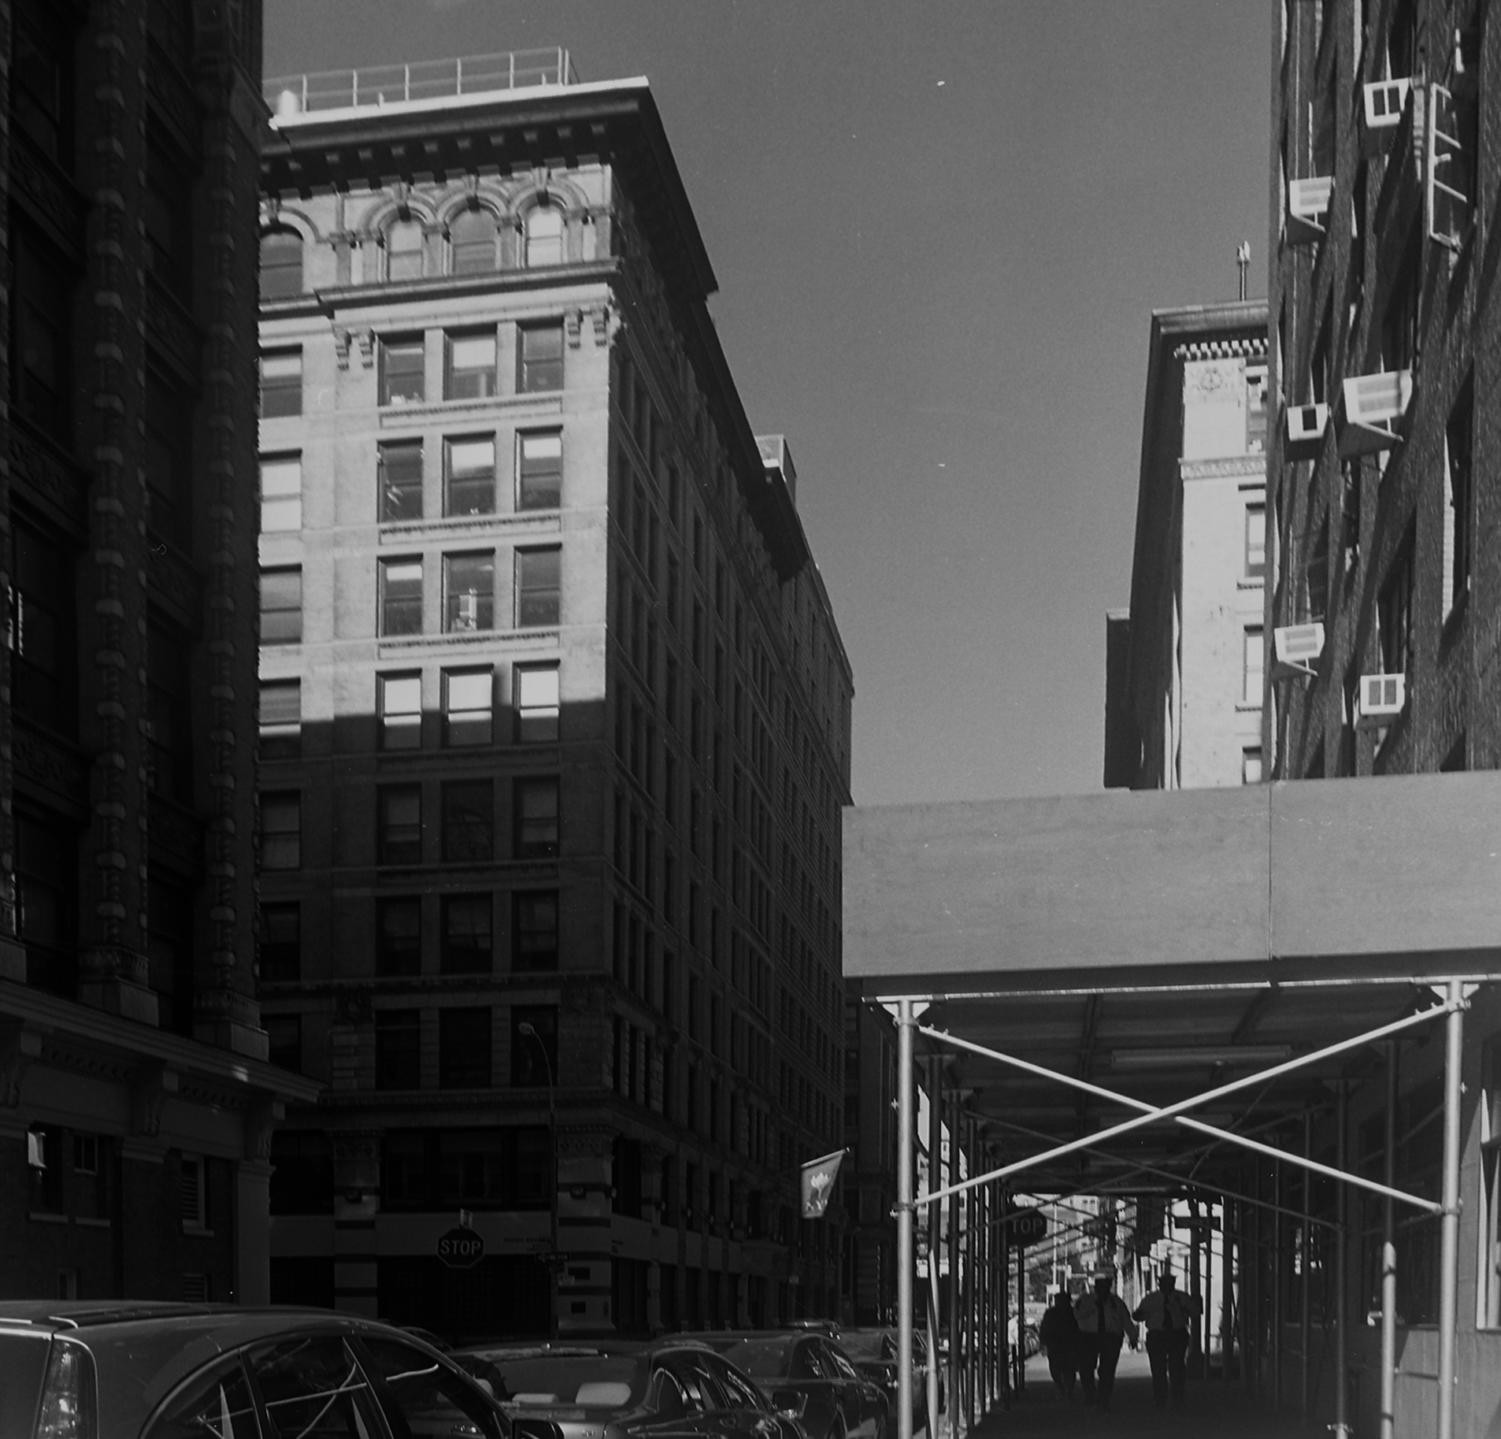 The building that housed The Triangle Shirtwaist Factory years later, now owned by NY